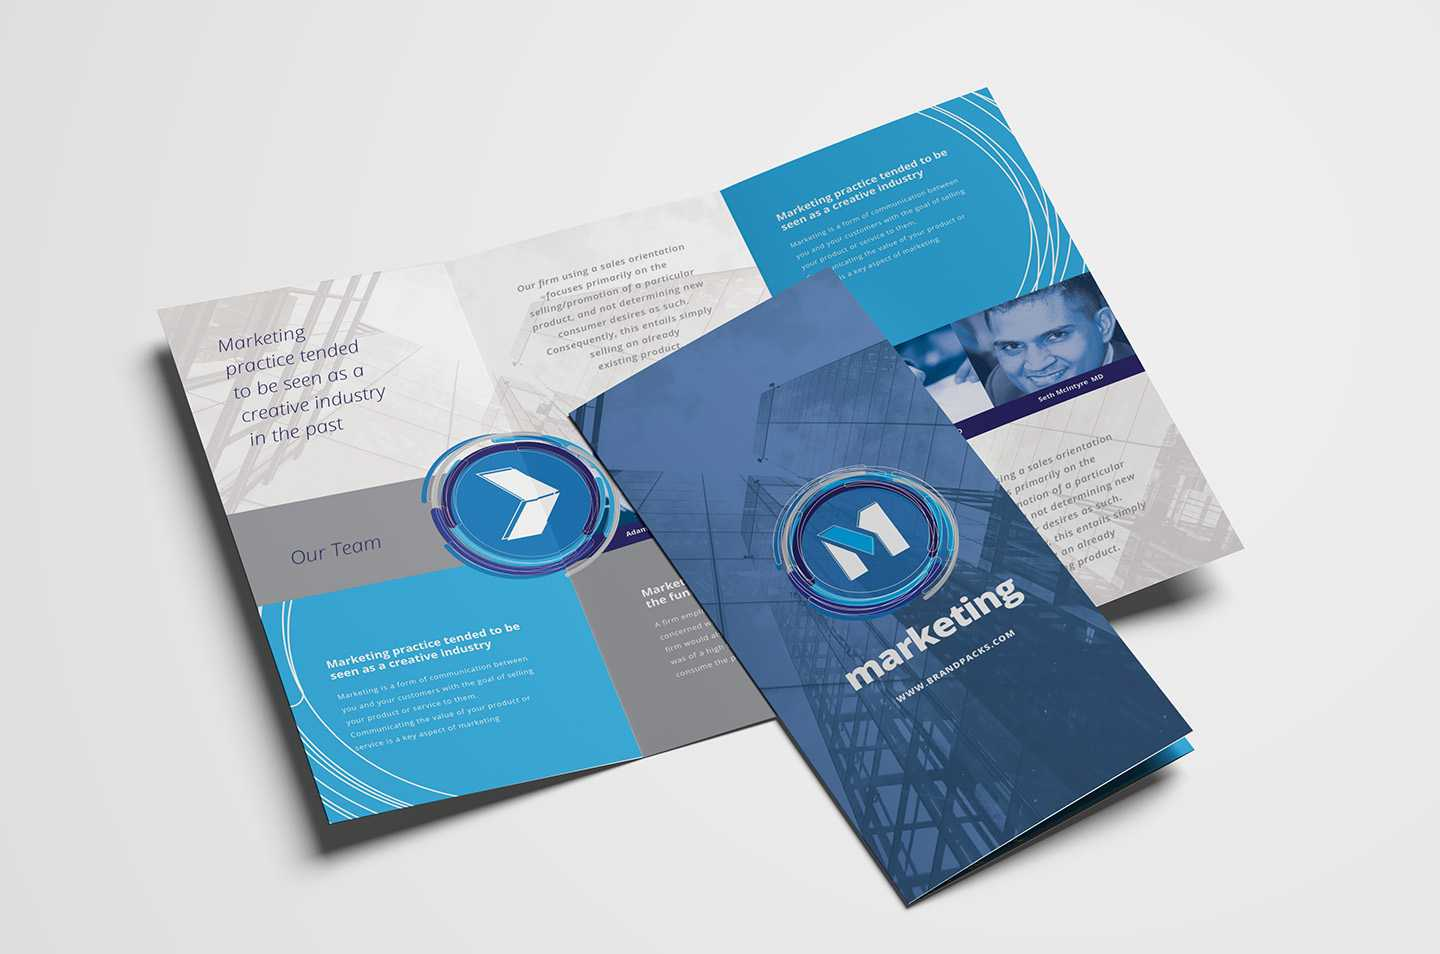 Free Multipurpose Trifold Brochure Template For Photoshop Intended For Tri Fold Brochure Template Illustrator Free